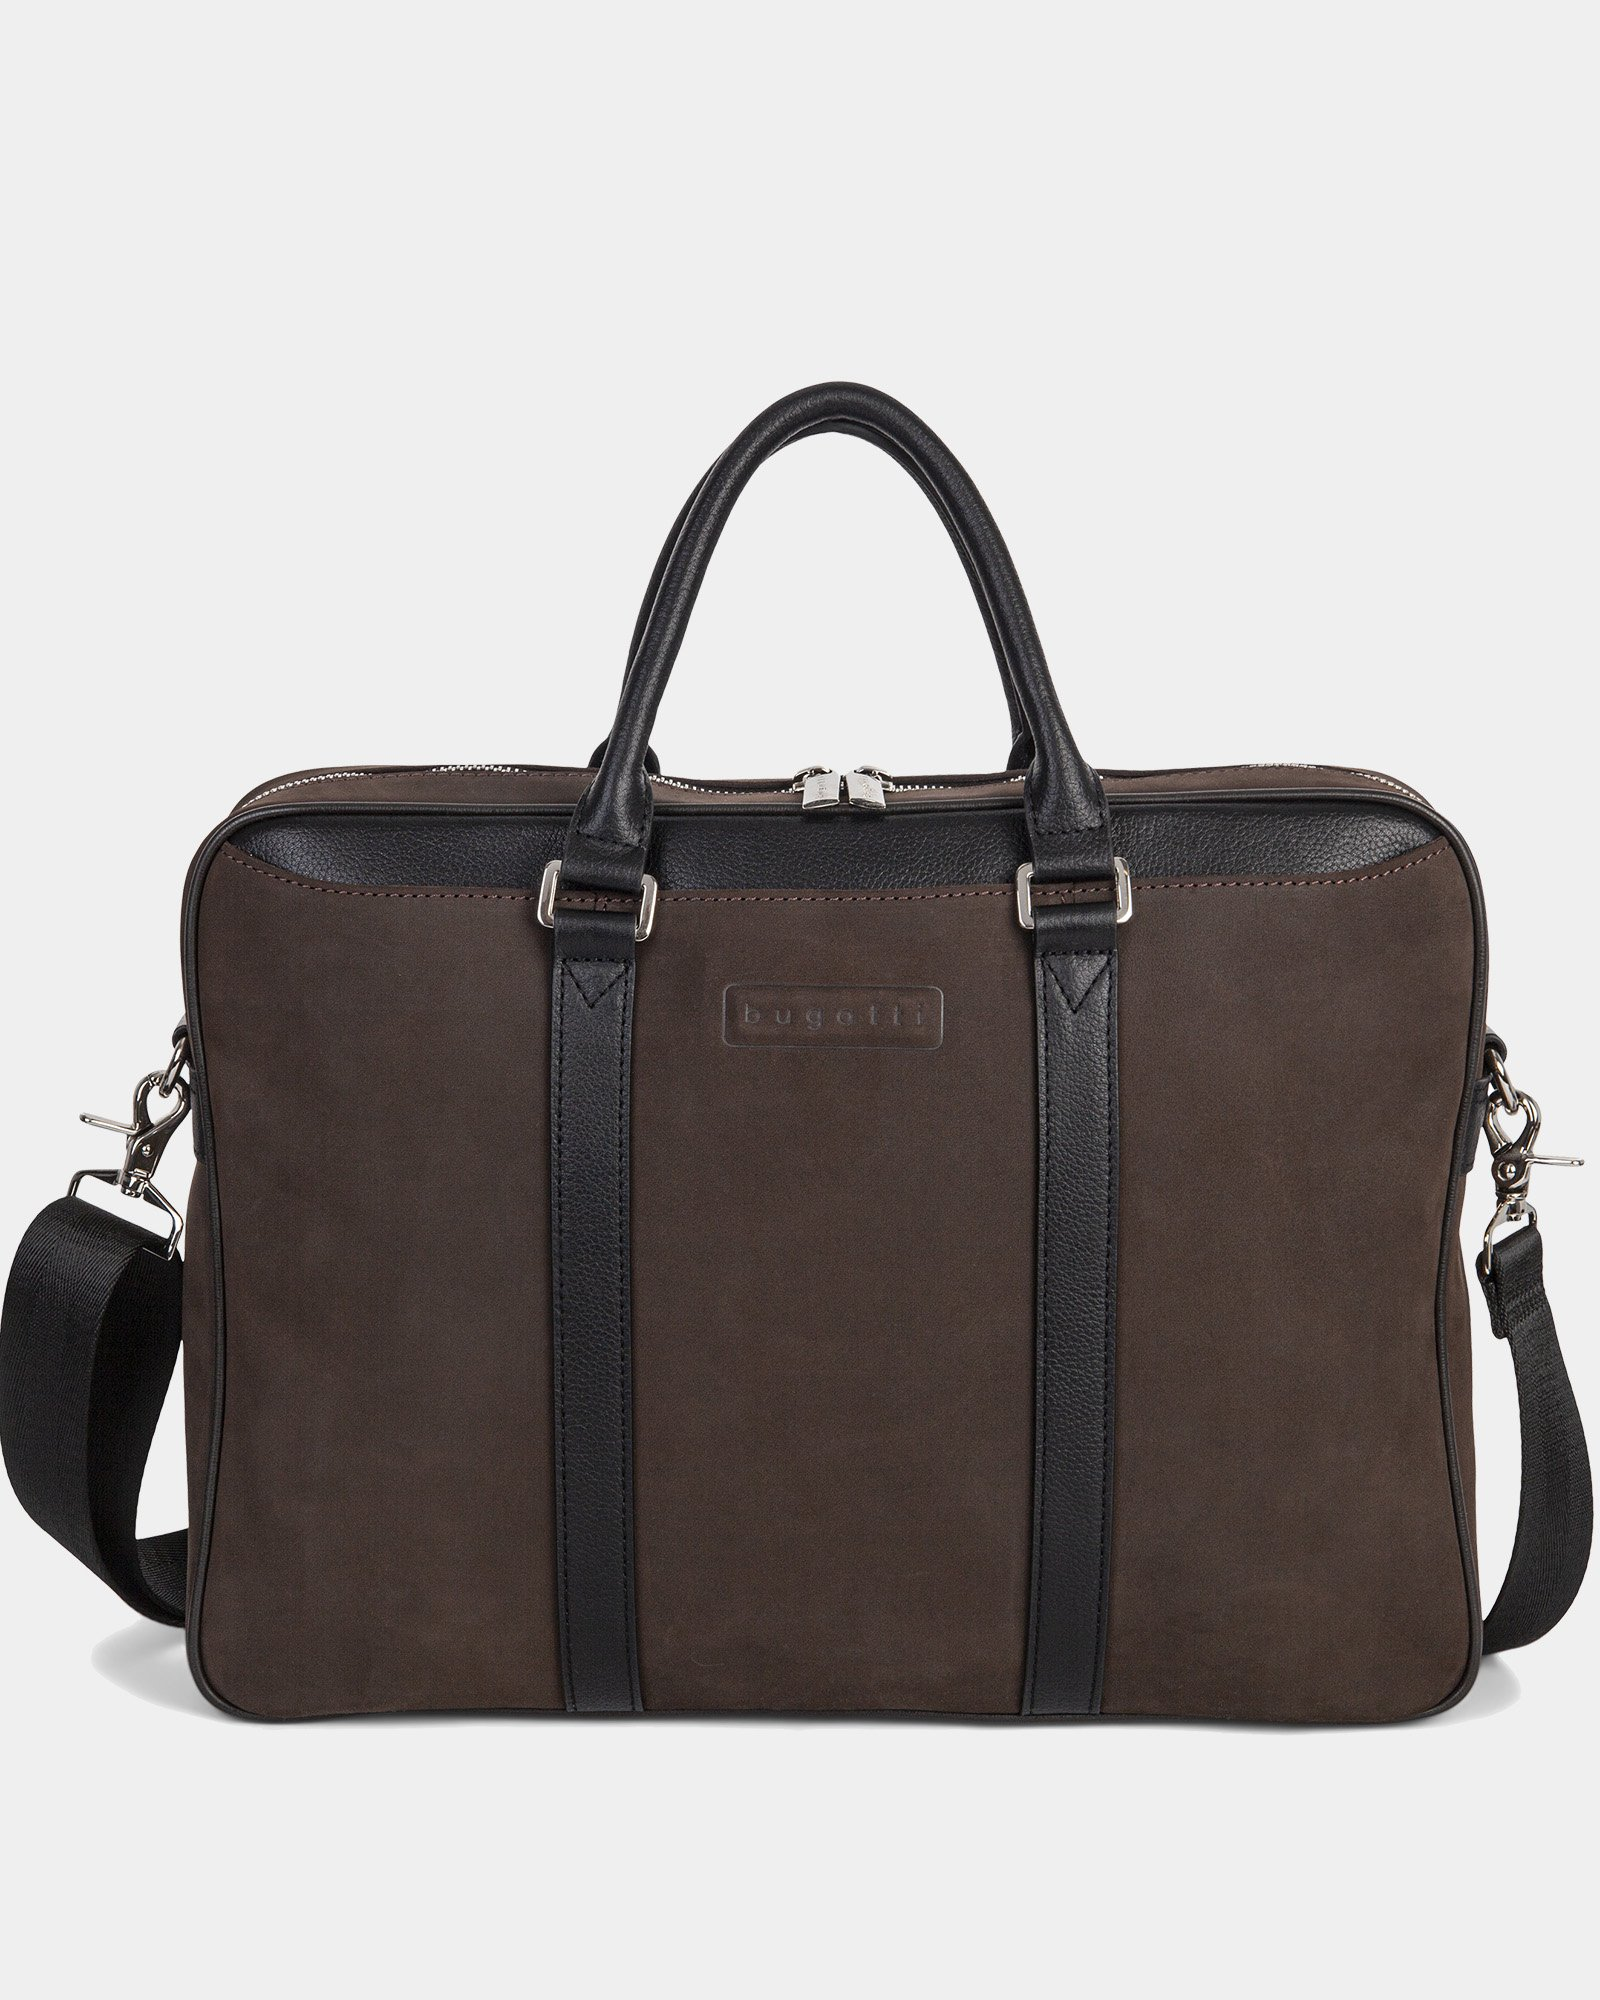 BALANCE - BRIEFCASE FOR 14 IN LAPTOP with Adjustable and removable strap - BROWN  - Bugatti - Zoom